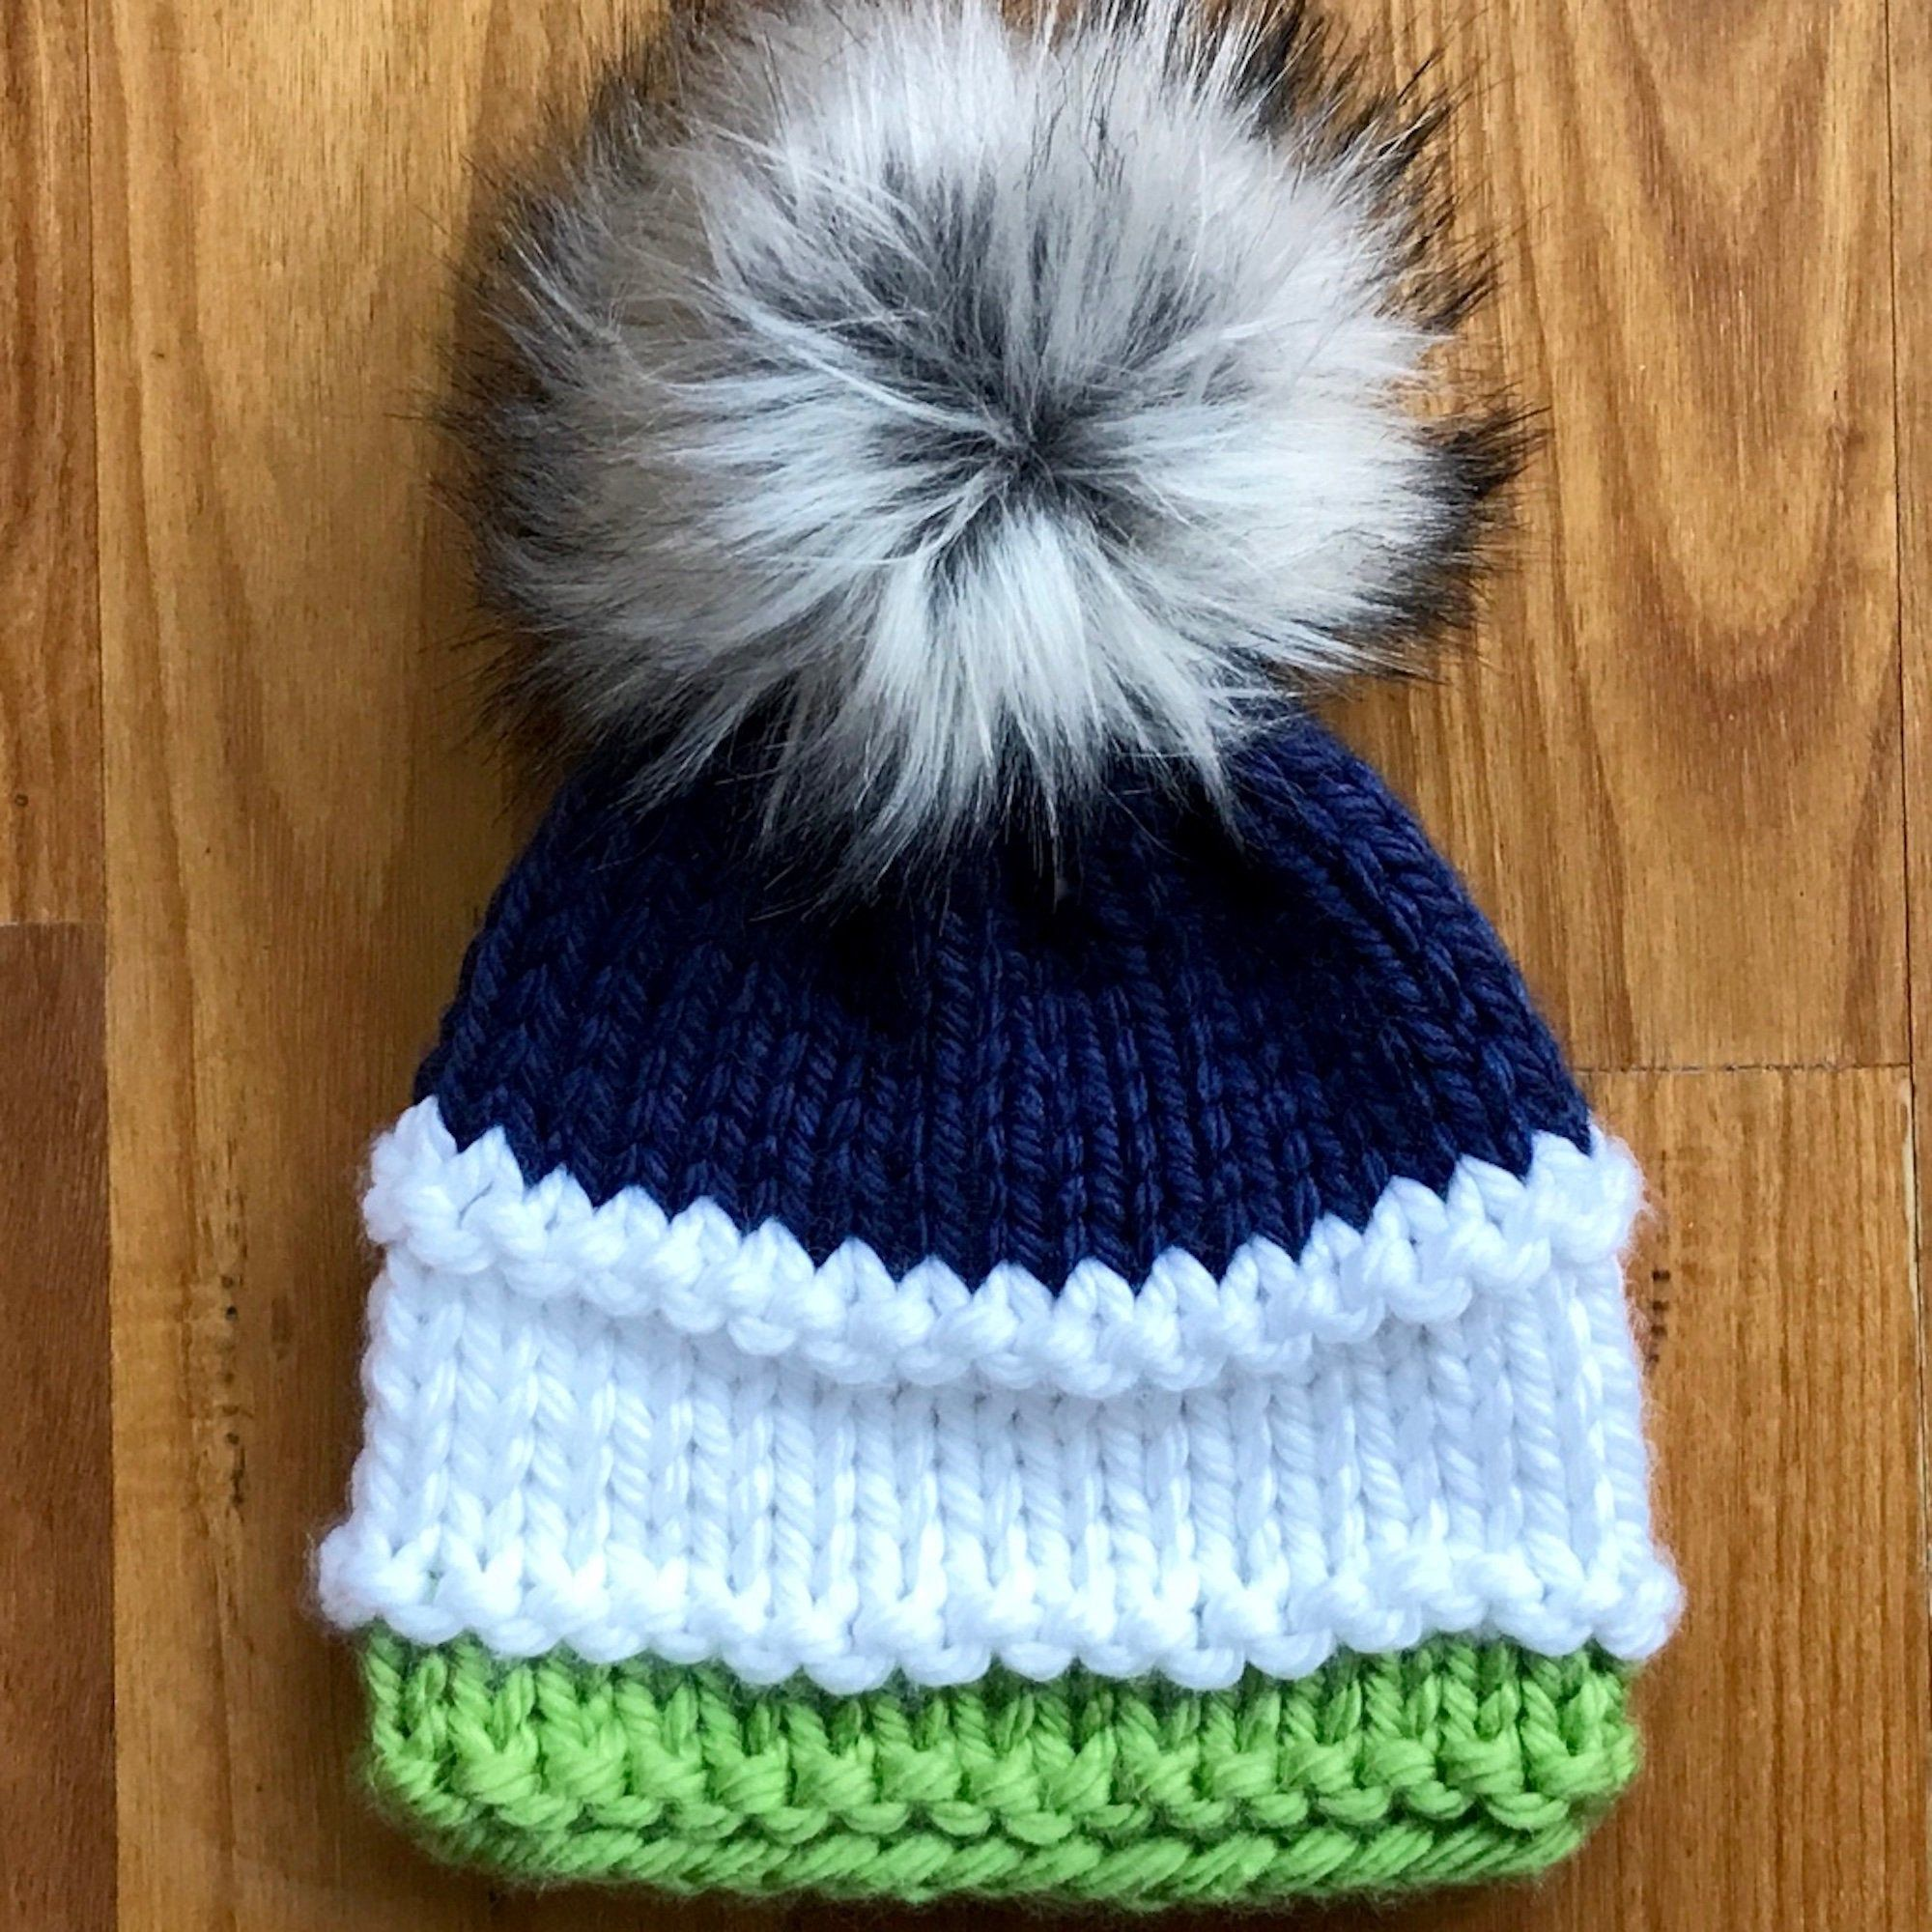 Knitted Toddler Baby Bonnet With Pom Pom and String Ships from USA 4 Colors.